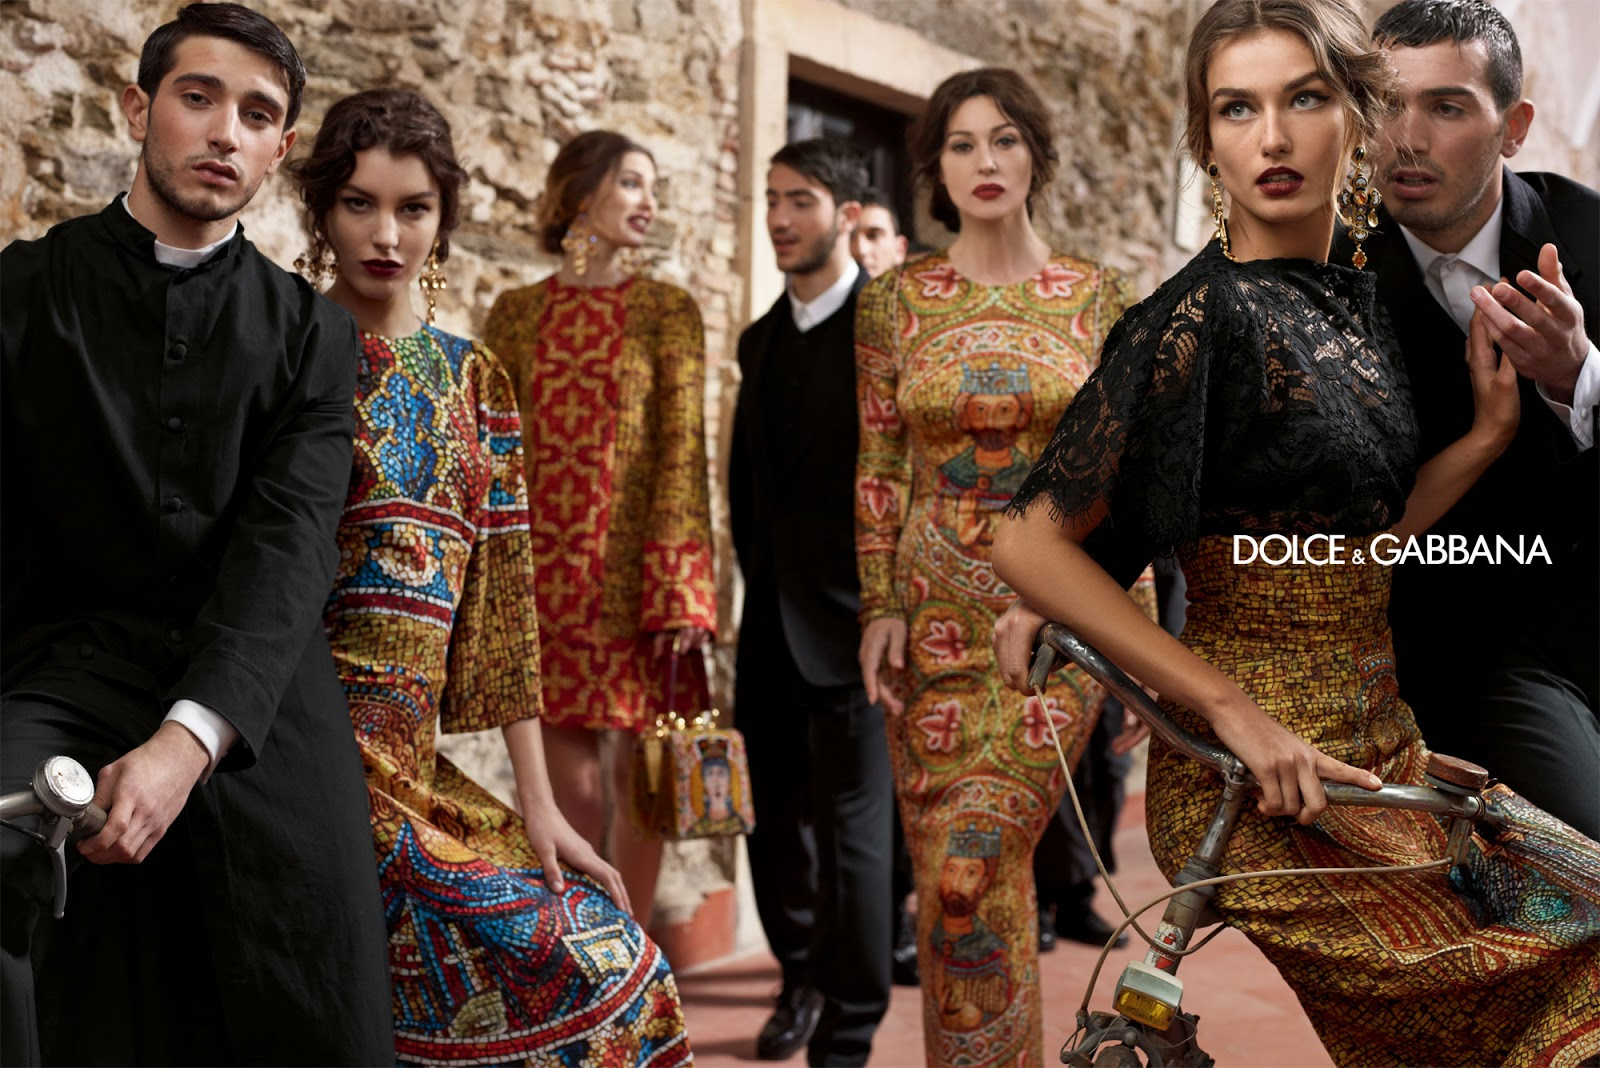 Dolce & Gabbana Frangrances TV Commercial, 'Italy' Song by Mina